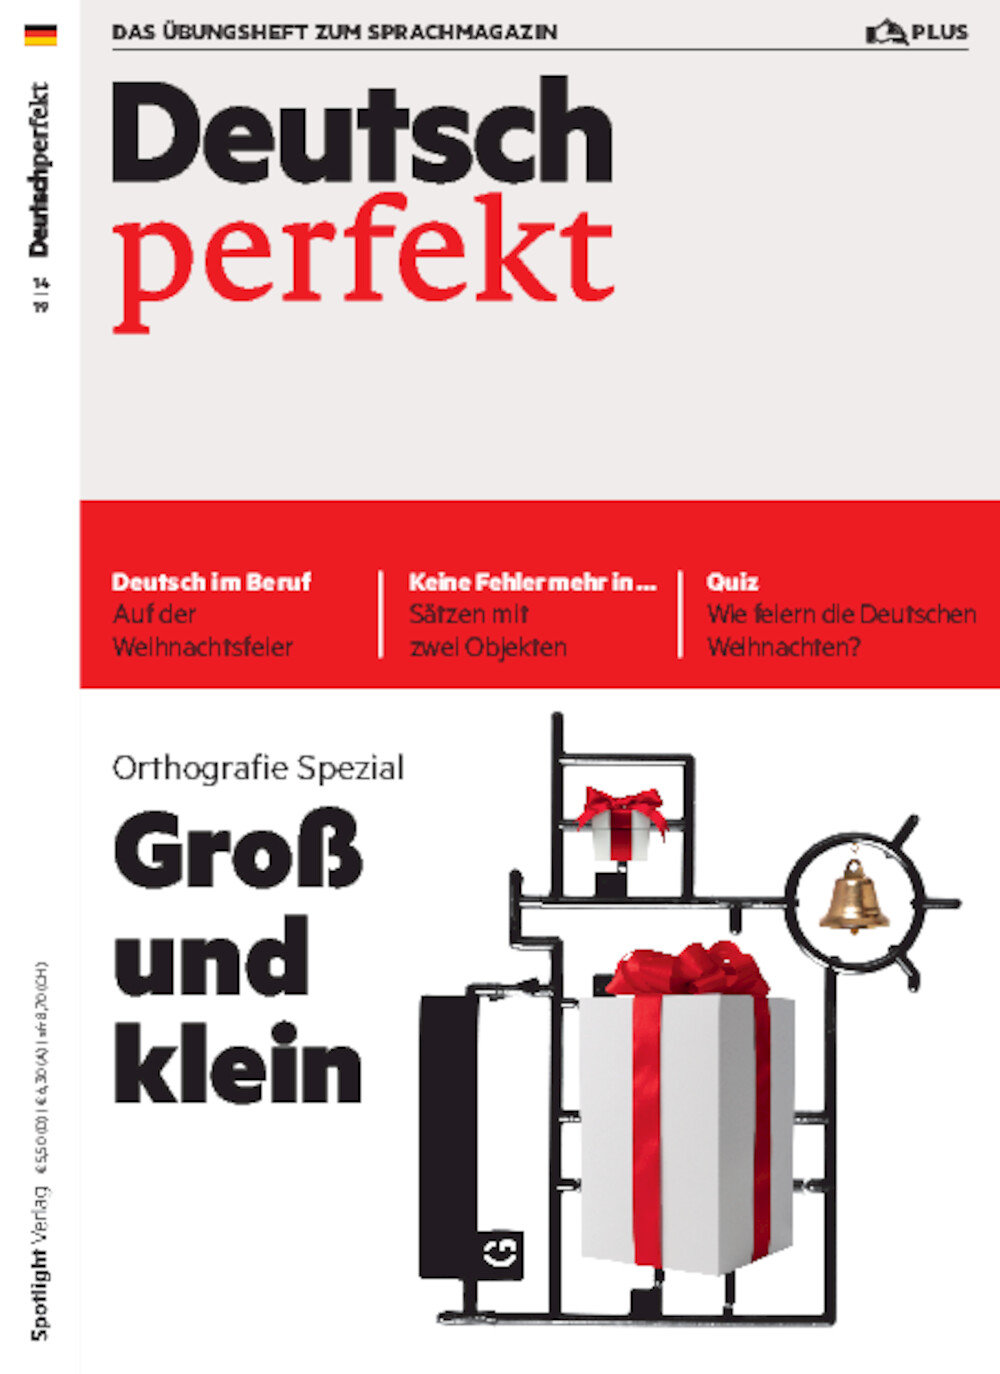 Deutsch perfekt PLUS 14/2019